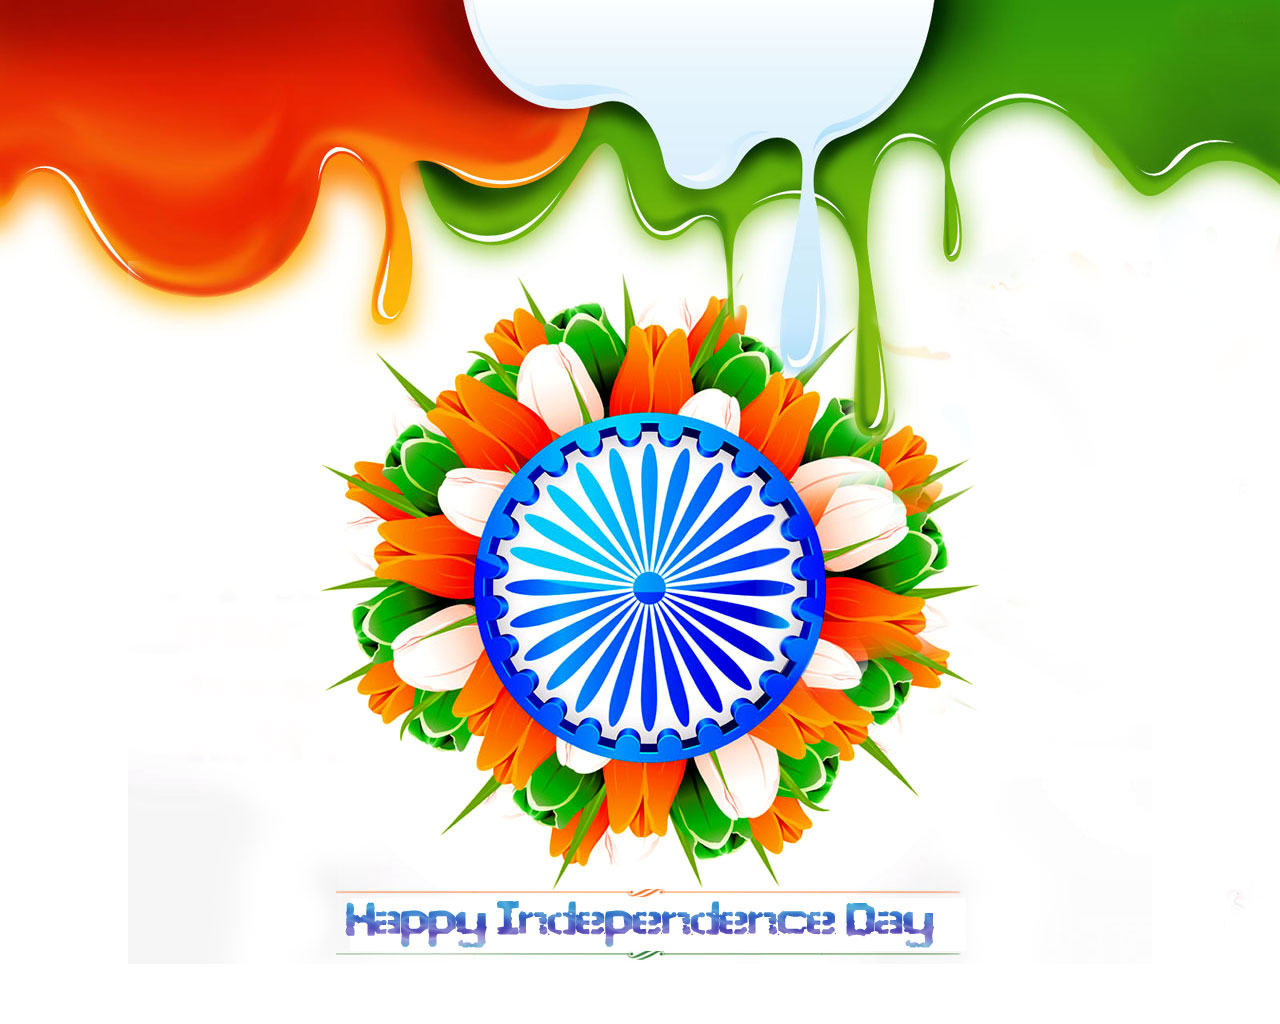 Independence Day Mobile Wallpapers: 15th August Independence Day Wallpapers, Images & Pictures